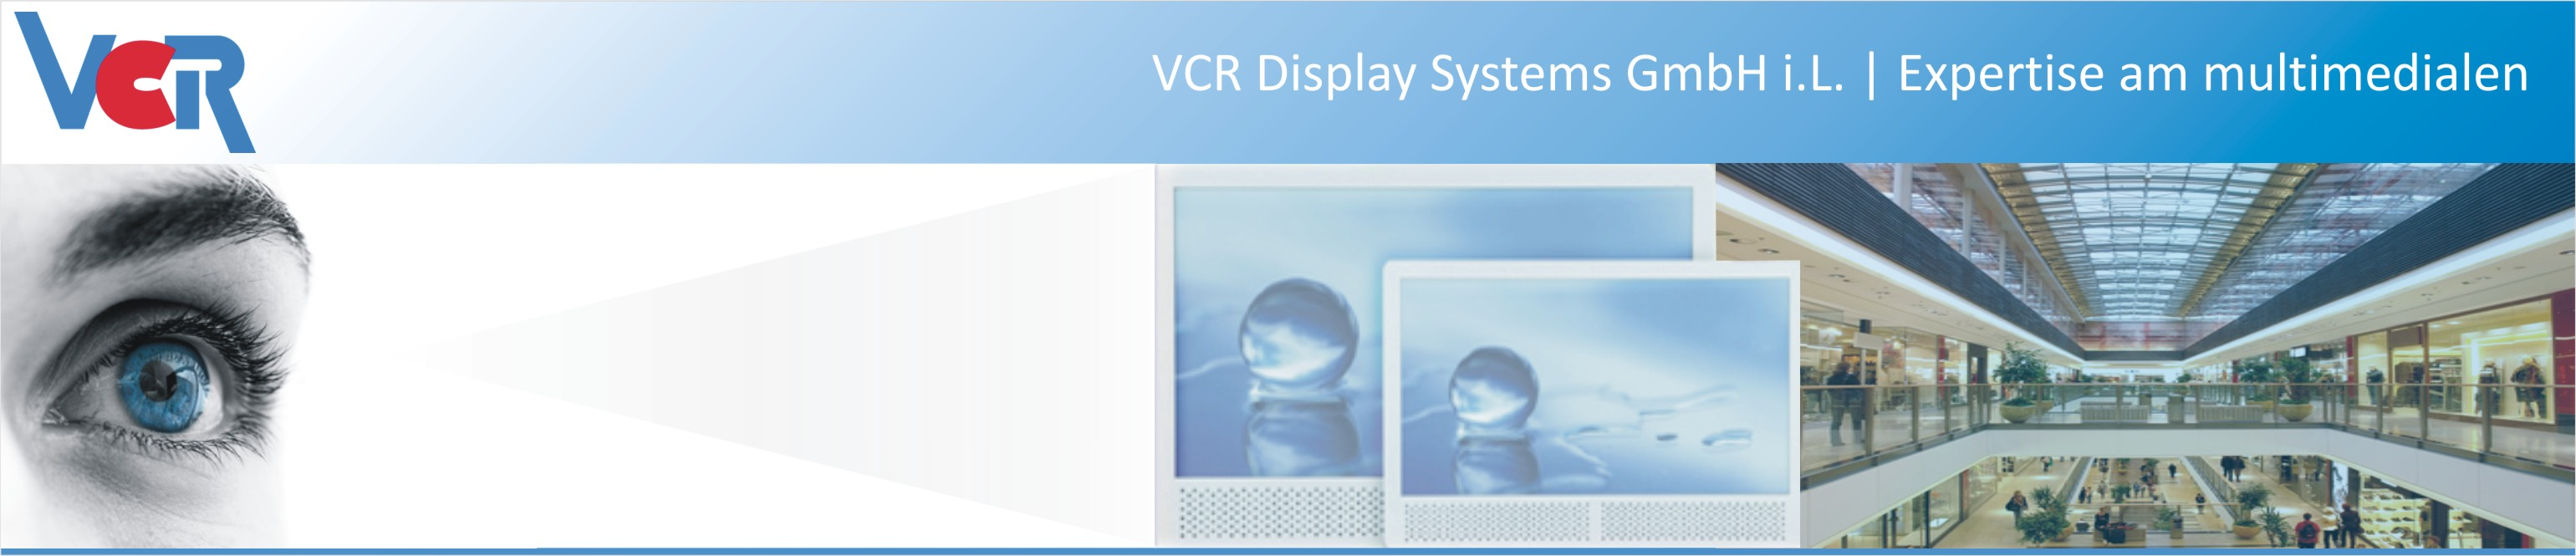 VCR Display Systems GmbH i.L. Logo